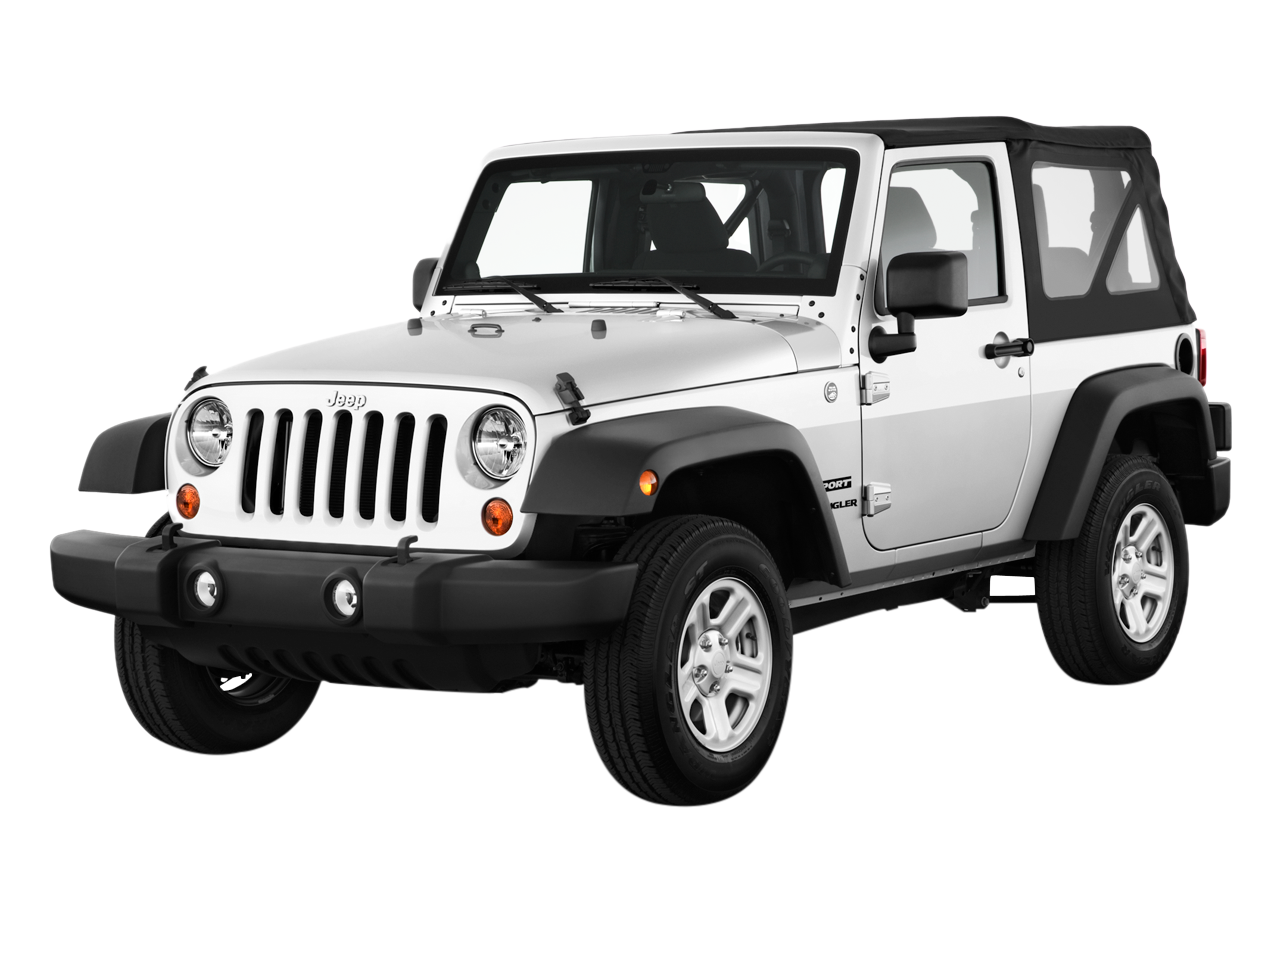 White jeep png. Image purepng free transparent